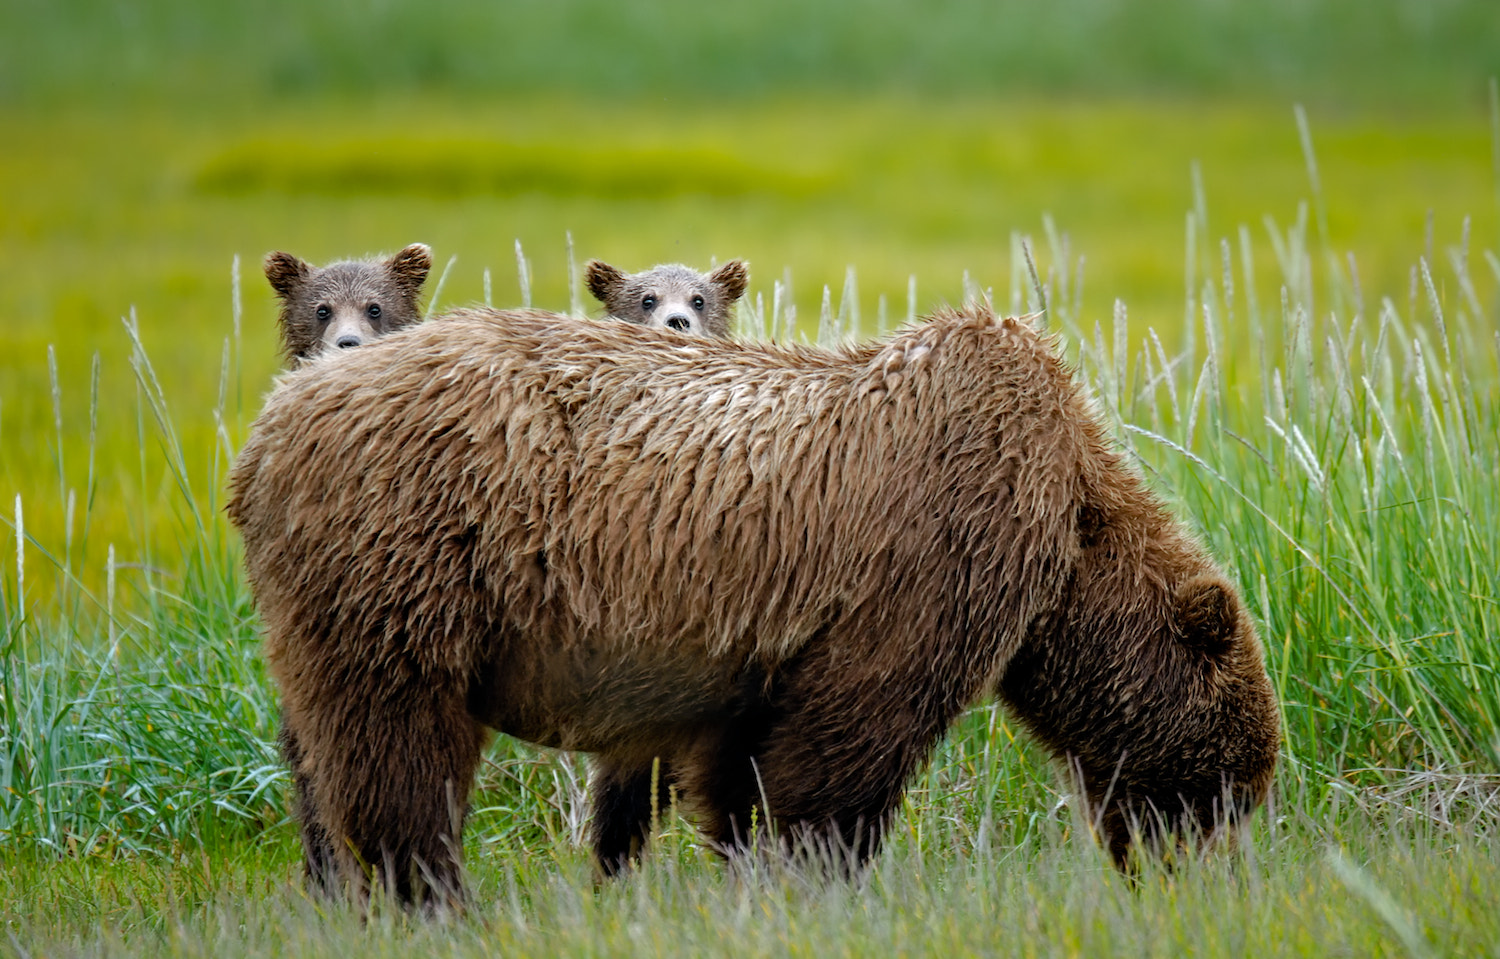 Photograph Bearly Concealed by Shane McDermott on 500px